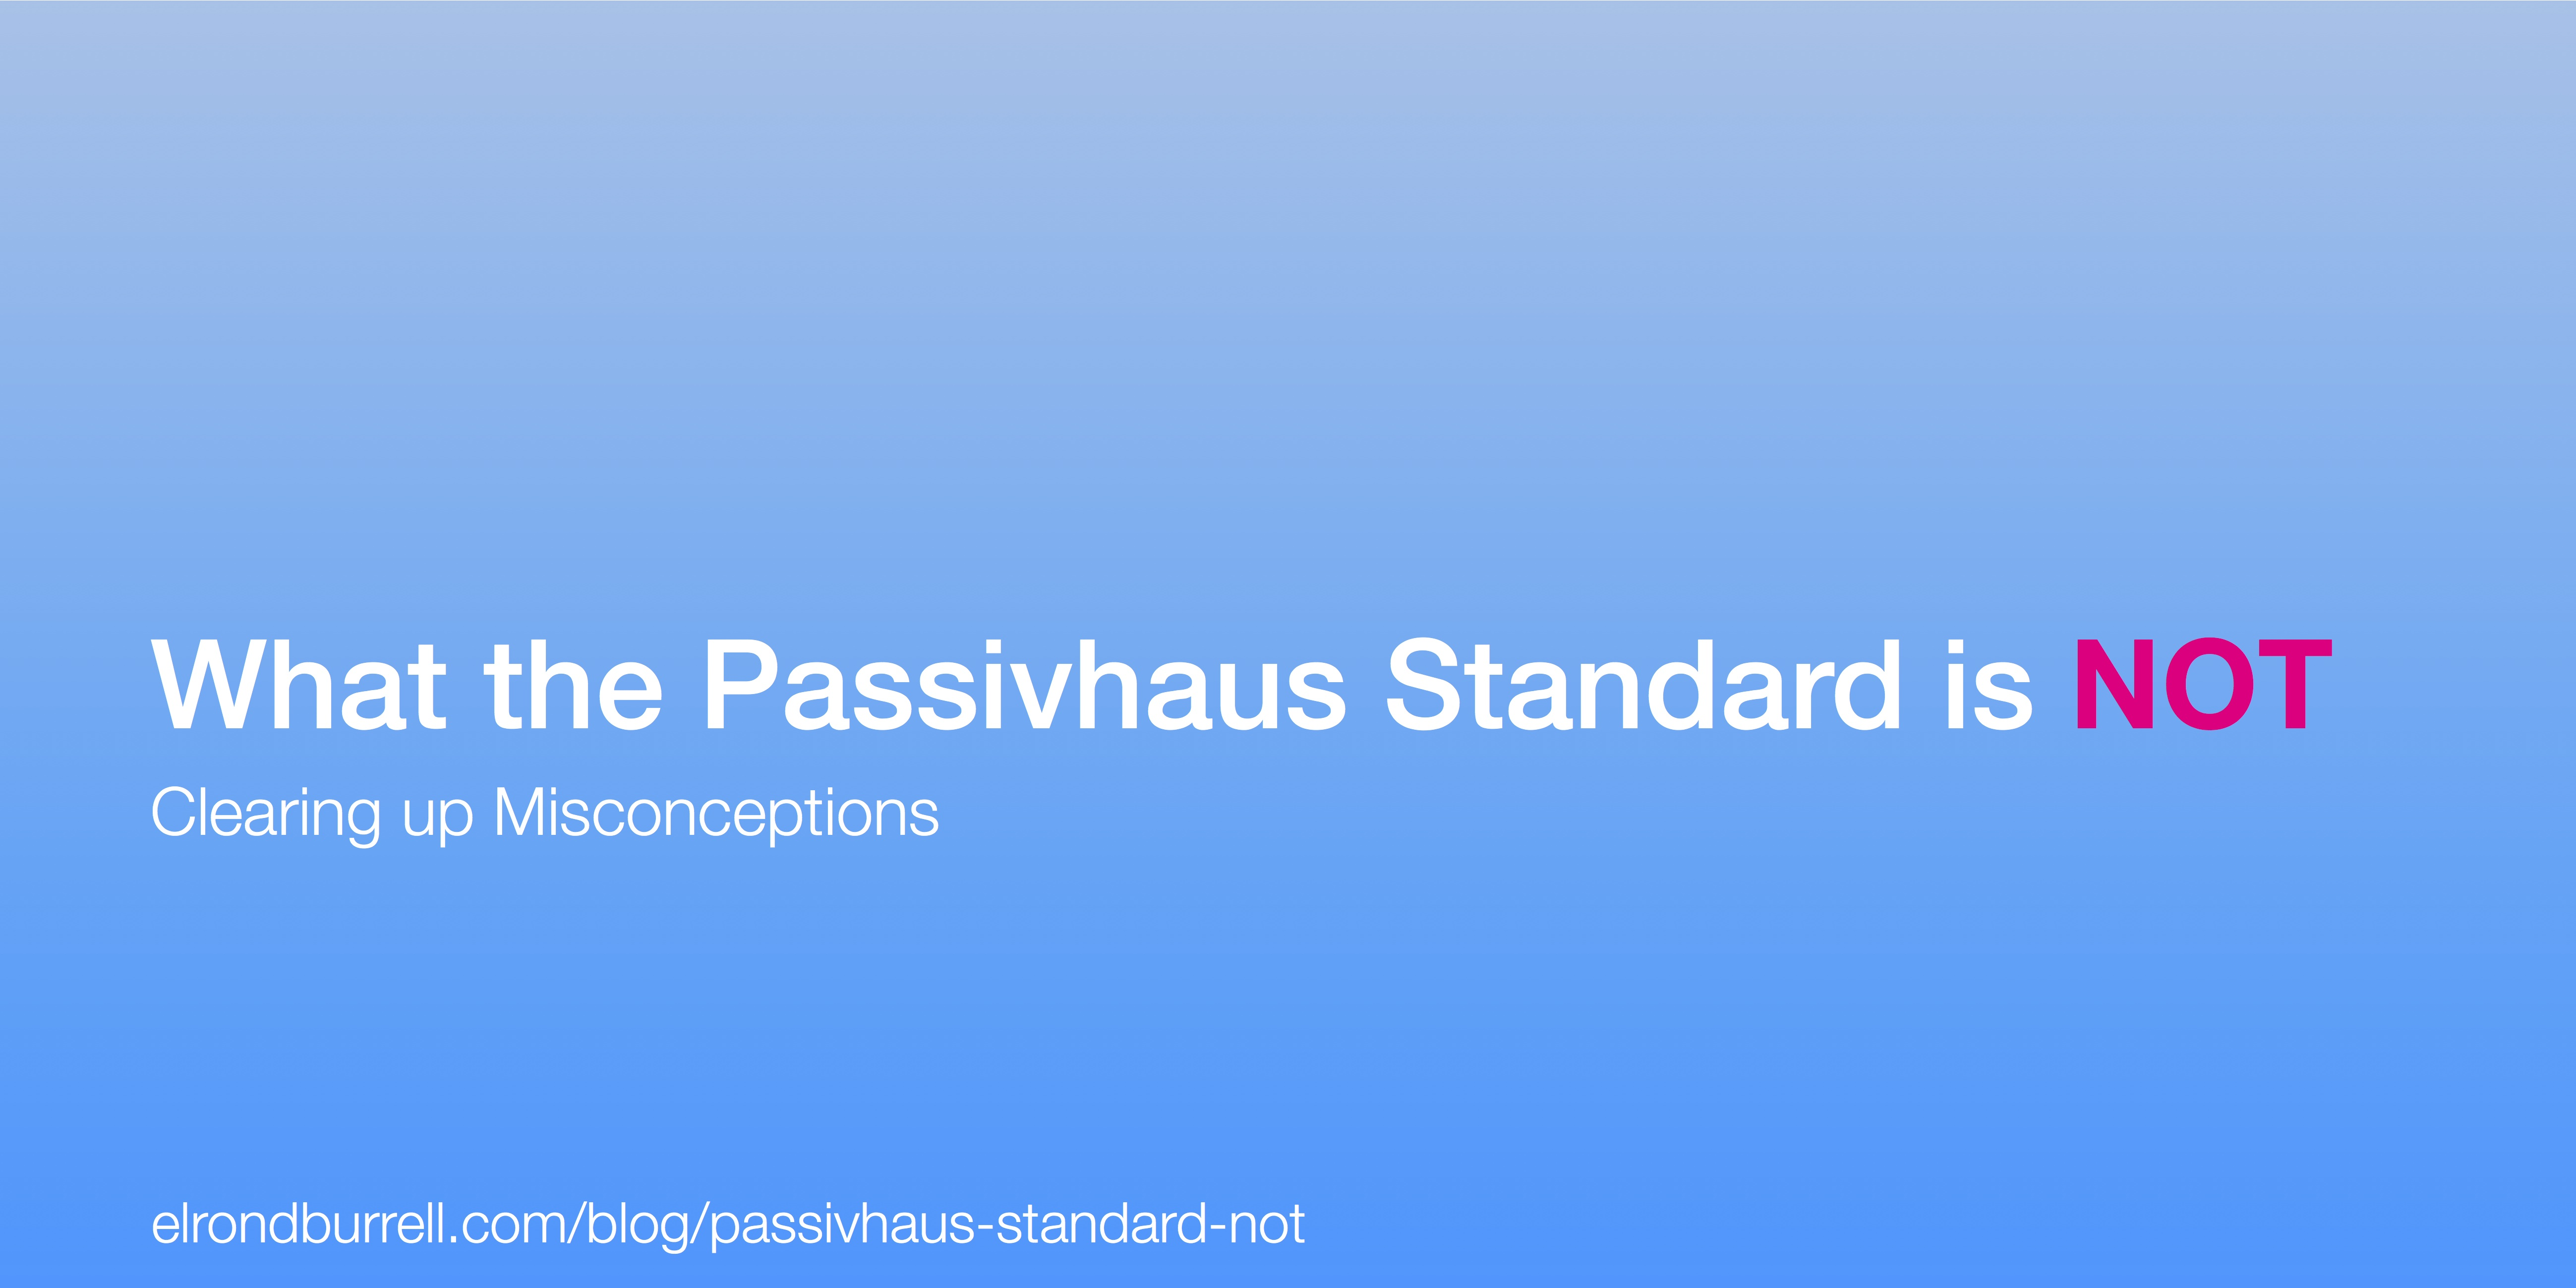 What the Passivhaus Standard is Not